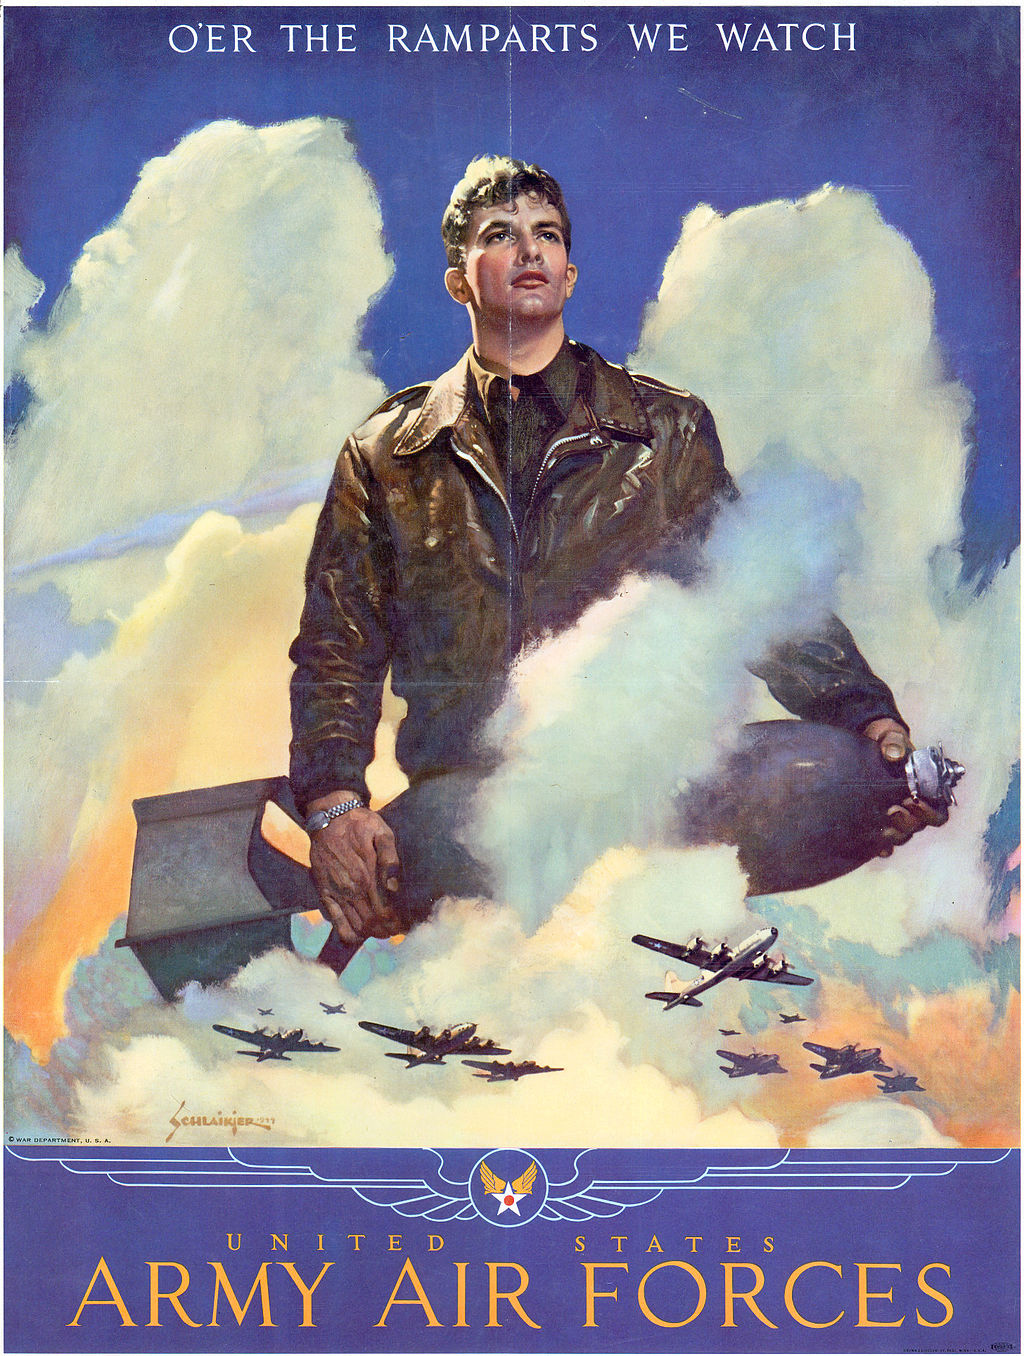 O'er the ramparts we watch in a 1945 United States Army Air Forces poster